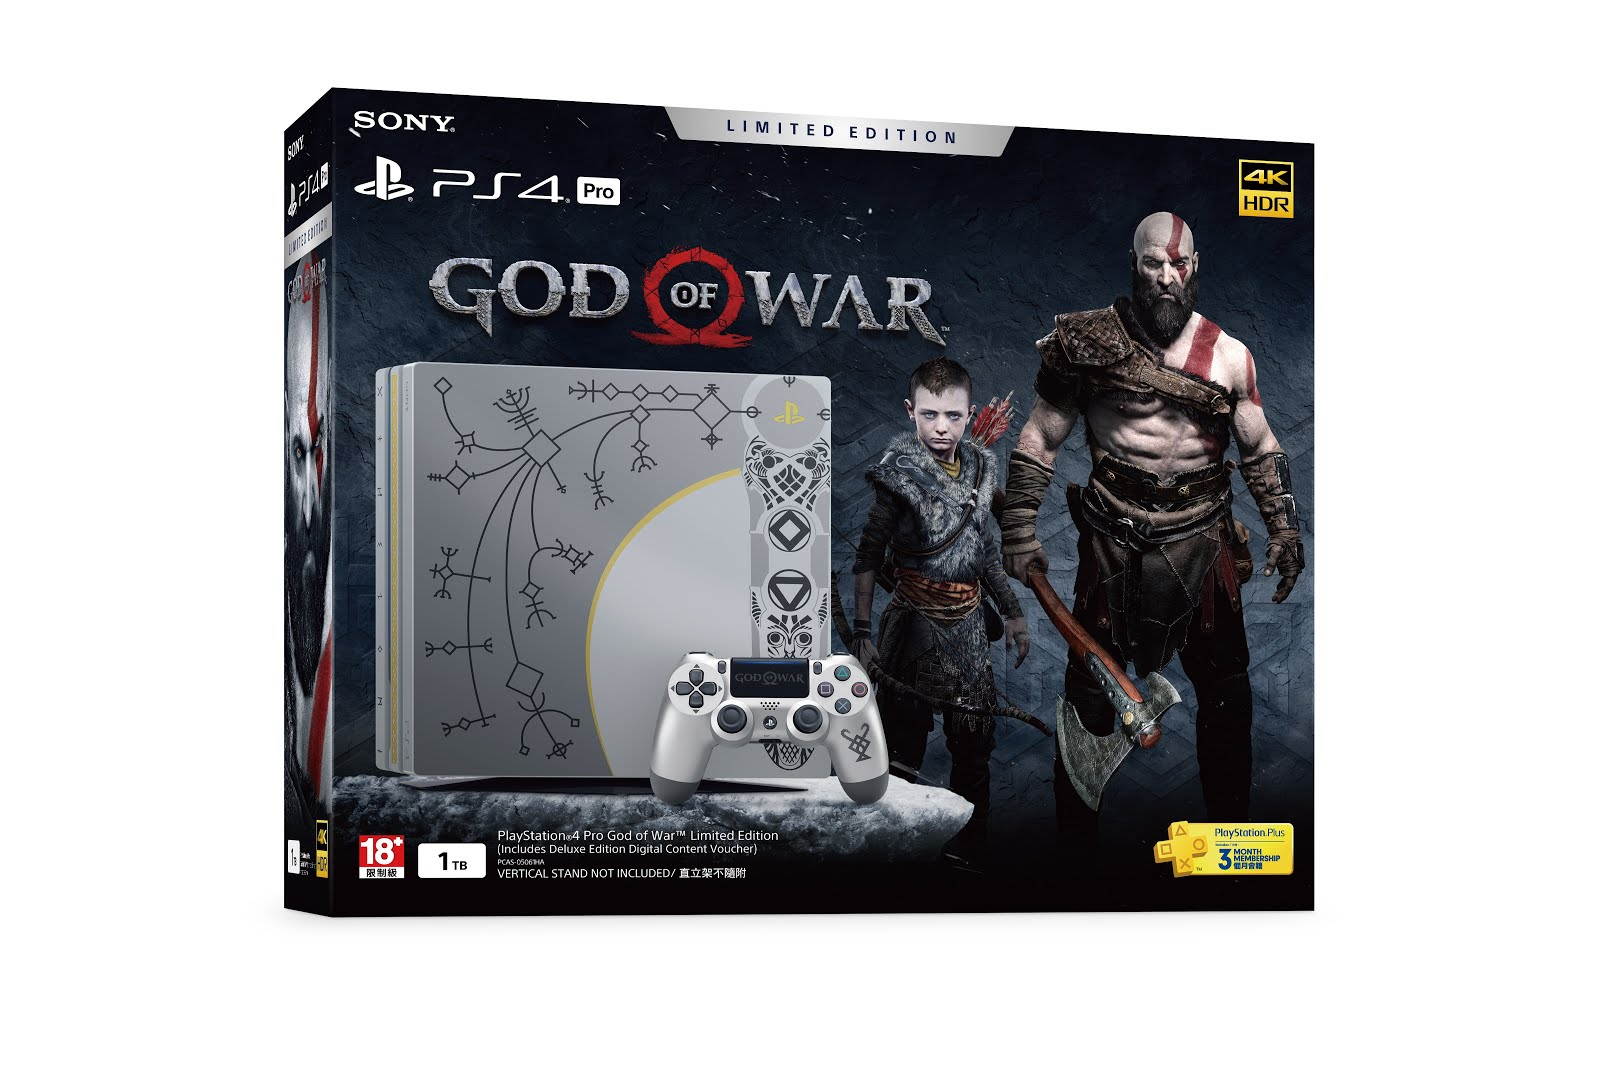 Ps pro god of war limited edition console to be available